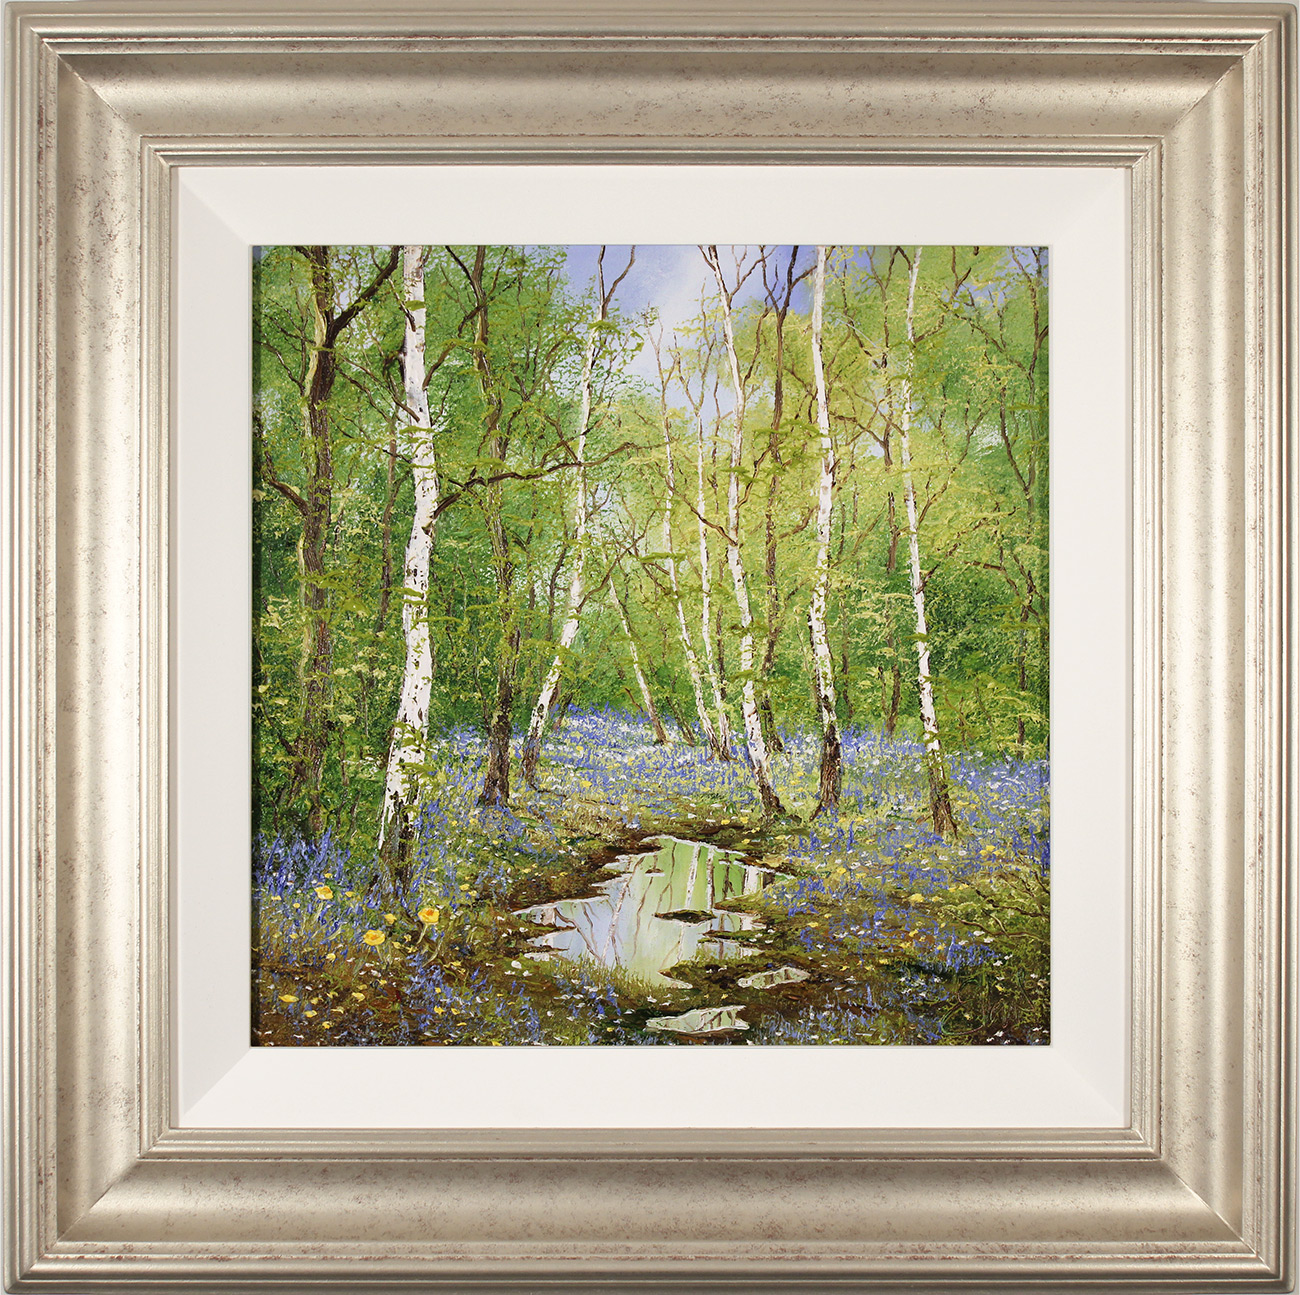 Terry Evans, Original oil painting on canvas, The Bluebell Wood Click to enlarge